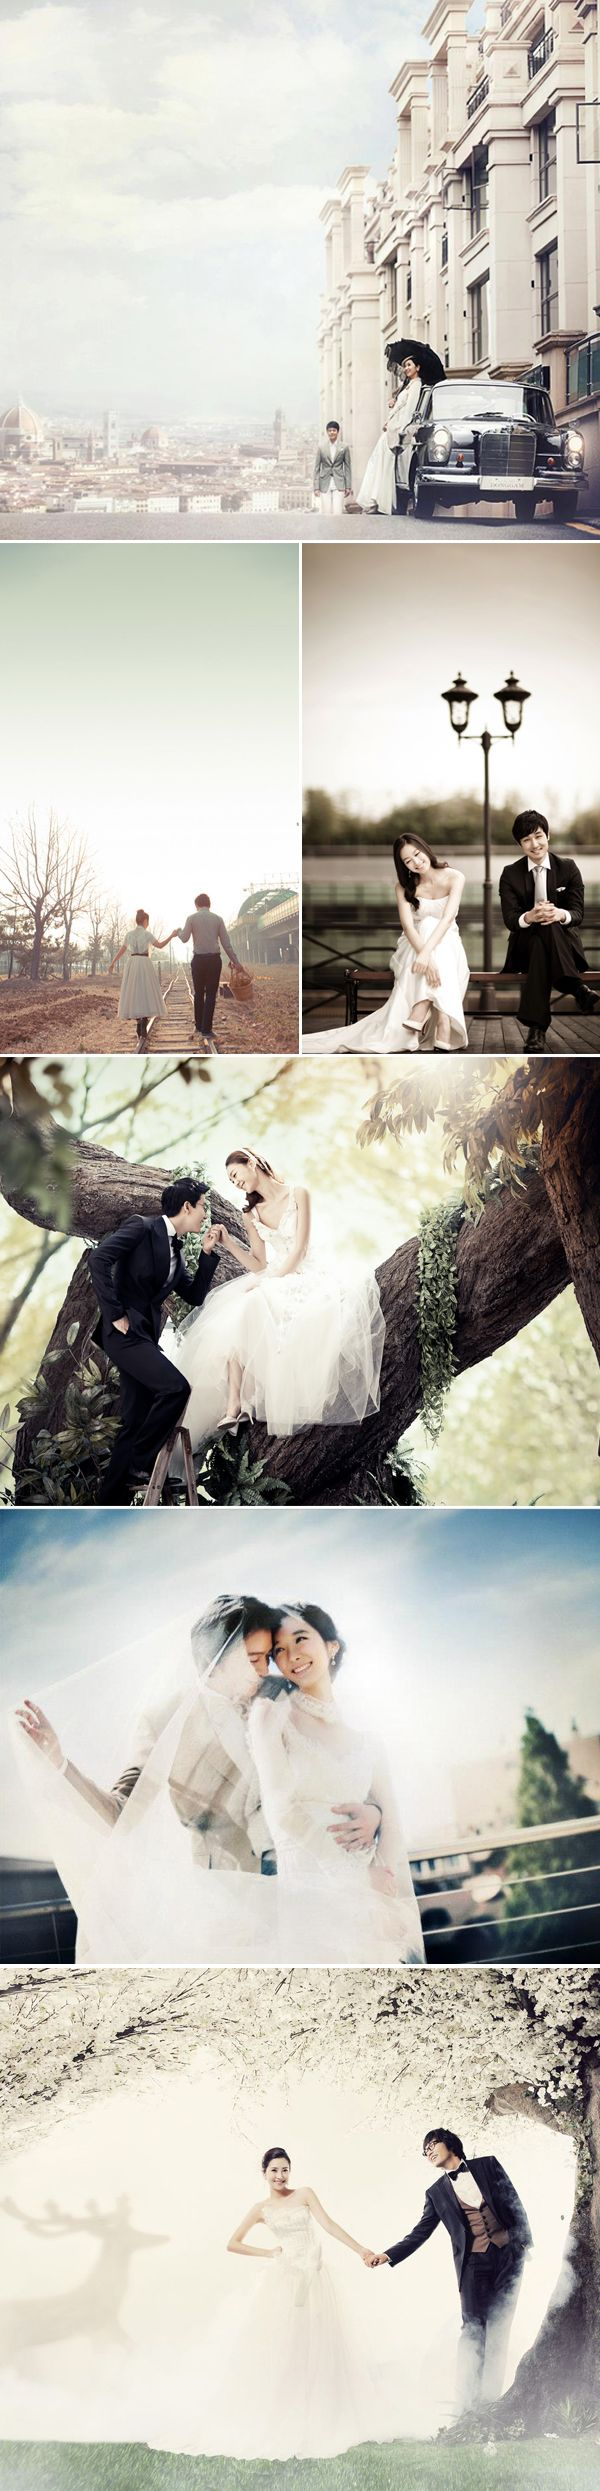 .Korean Wedding Photography.